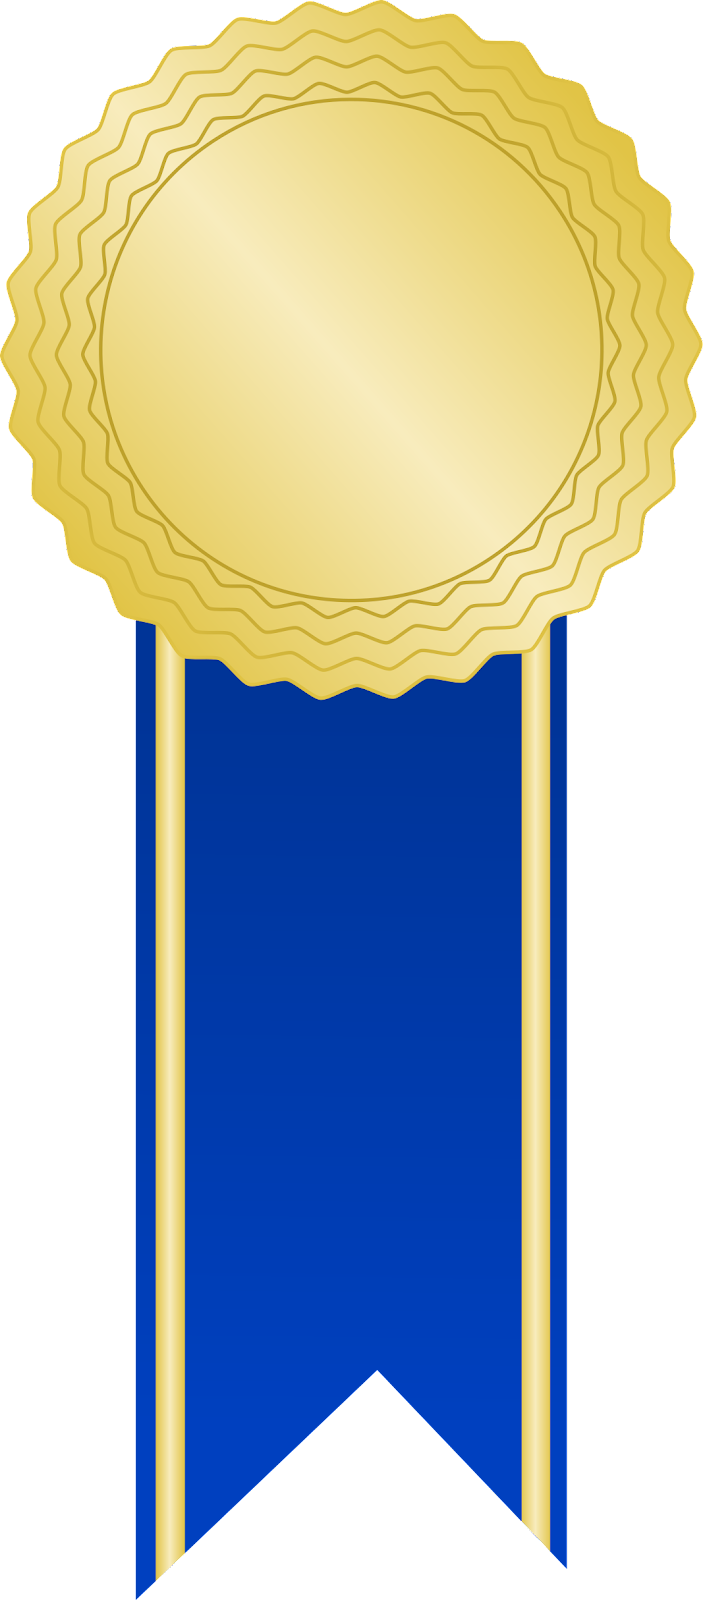 File:Golden Award with a Blue Ribbon.svg - Wikimedia Commons